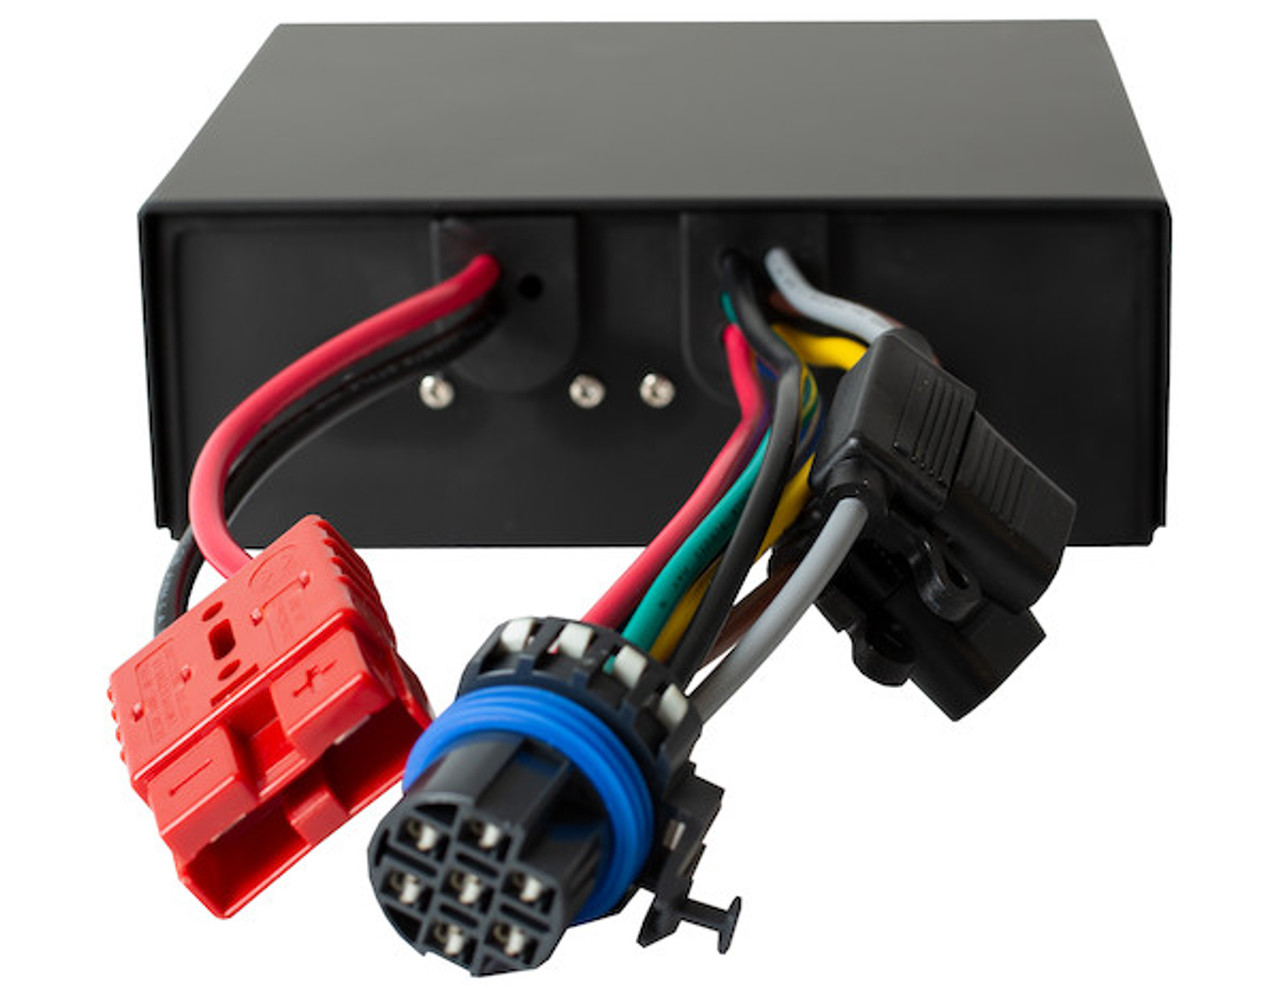 Buyers 3014199 Replacement Variable Speed Controller For SaltDogg SHPE Series Spreaders SHPE0750, SHPE1500, SHPE2000, SHPE4000 6